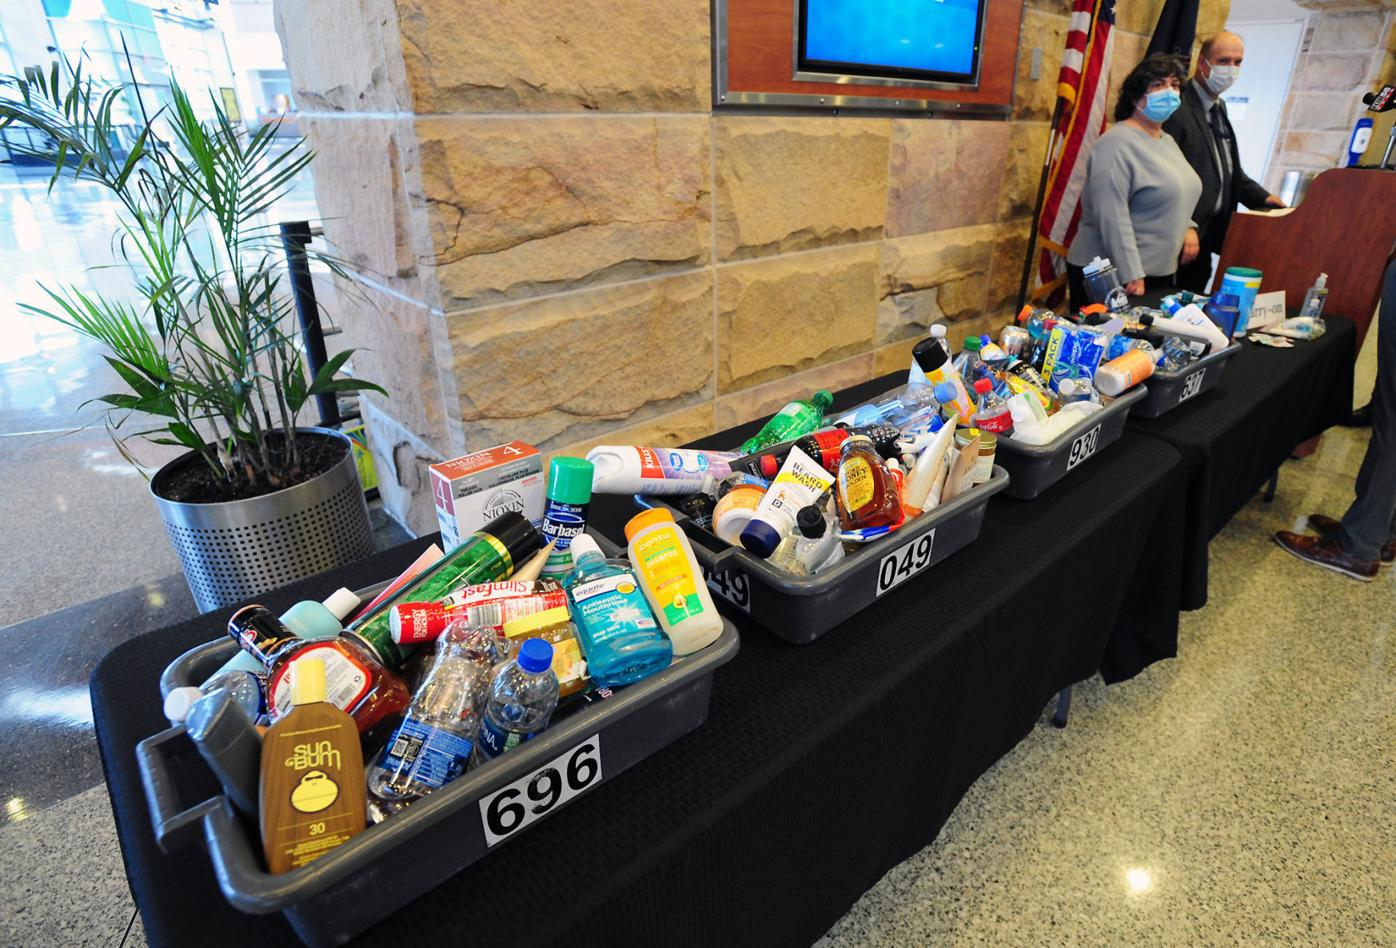 TSA reminds travelers that some things won't fly in carry-ons